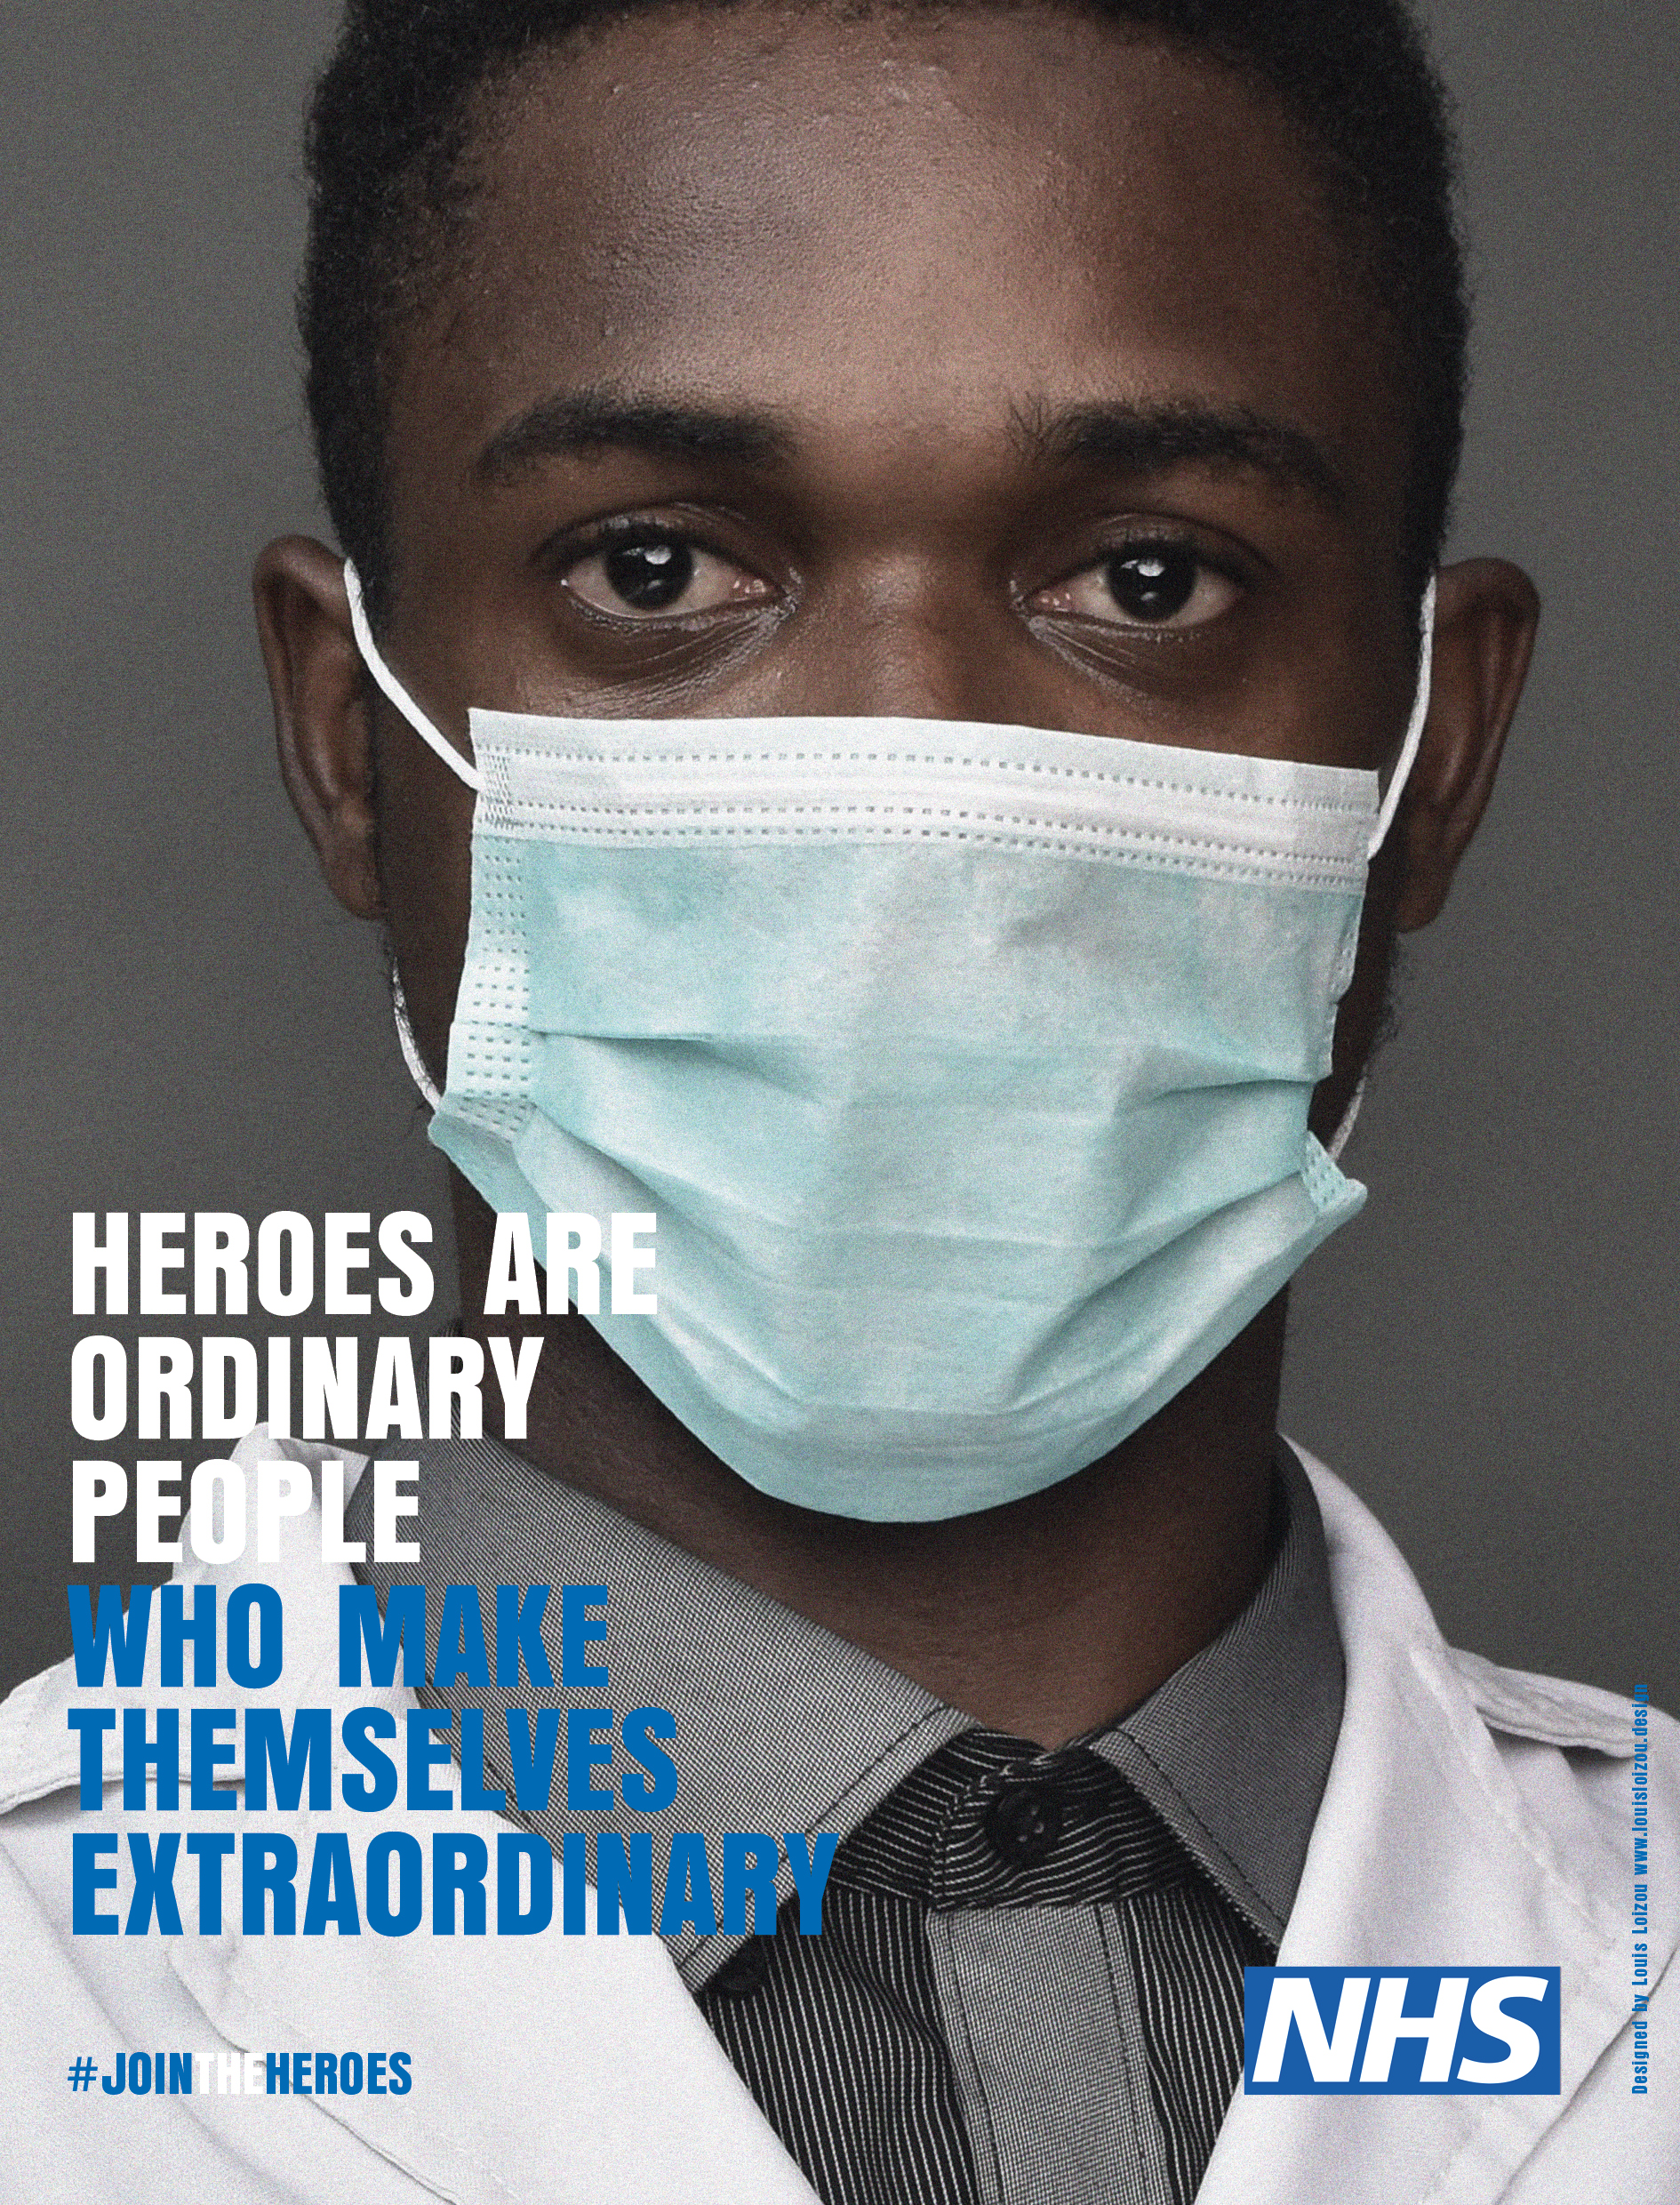 NHS_JoinTheHeroes_01-3